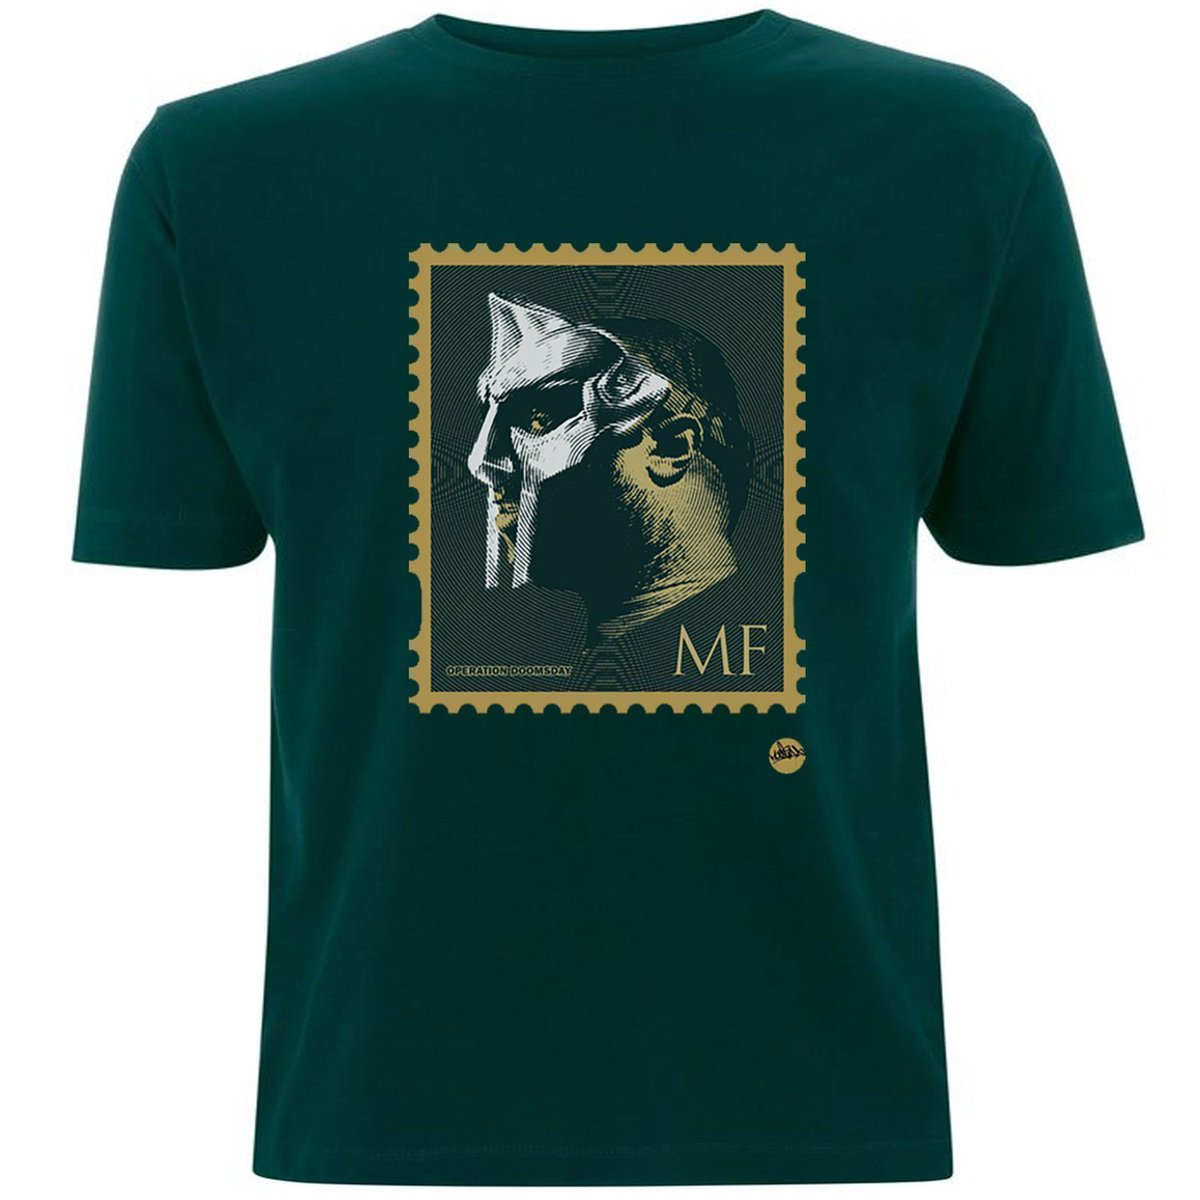 Most of my VILLAINS don't appear on no Stamp -  #MFDOOM #DOOM #Green #Tshirt #TShirtDay #HipHop RT